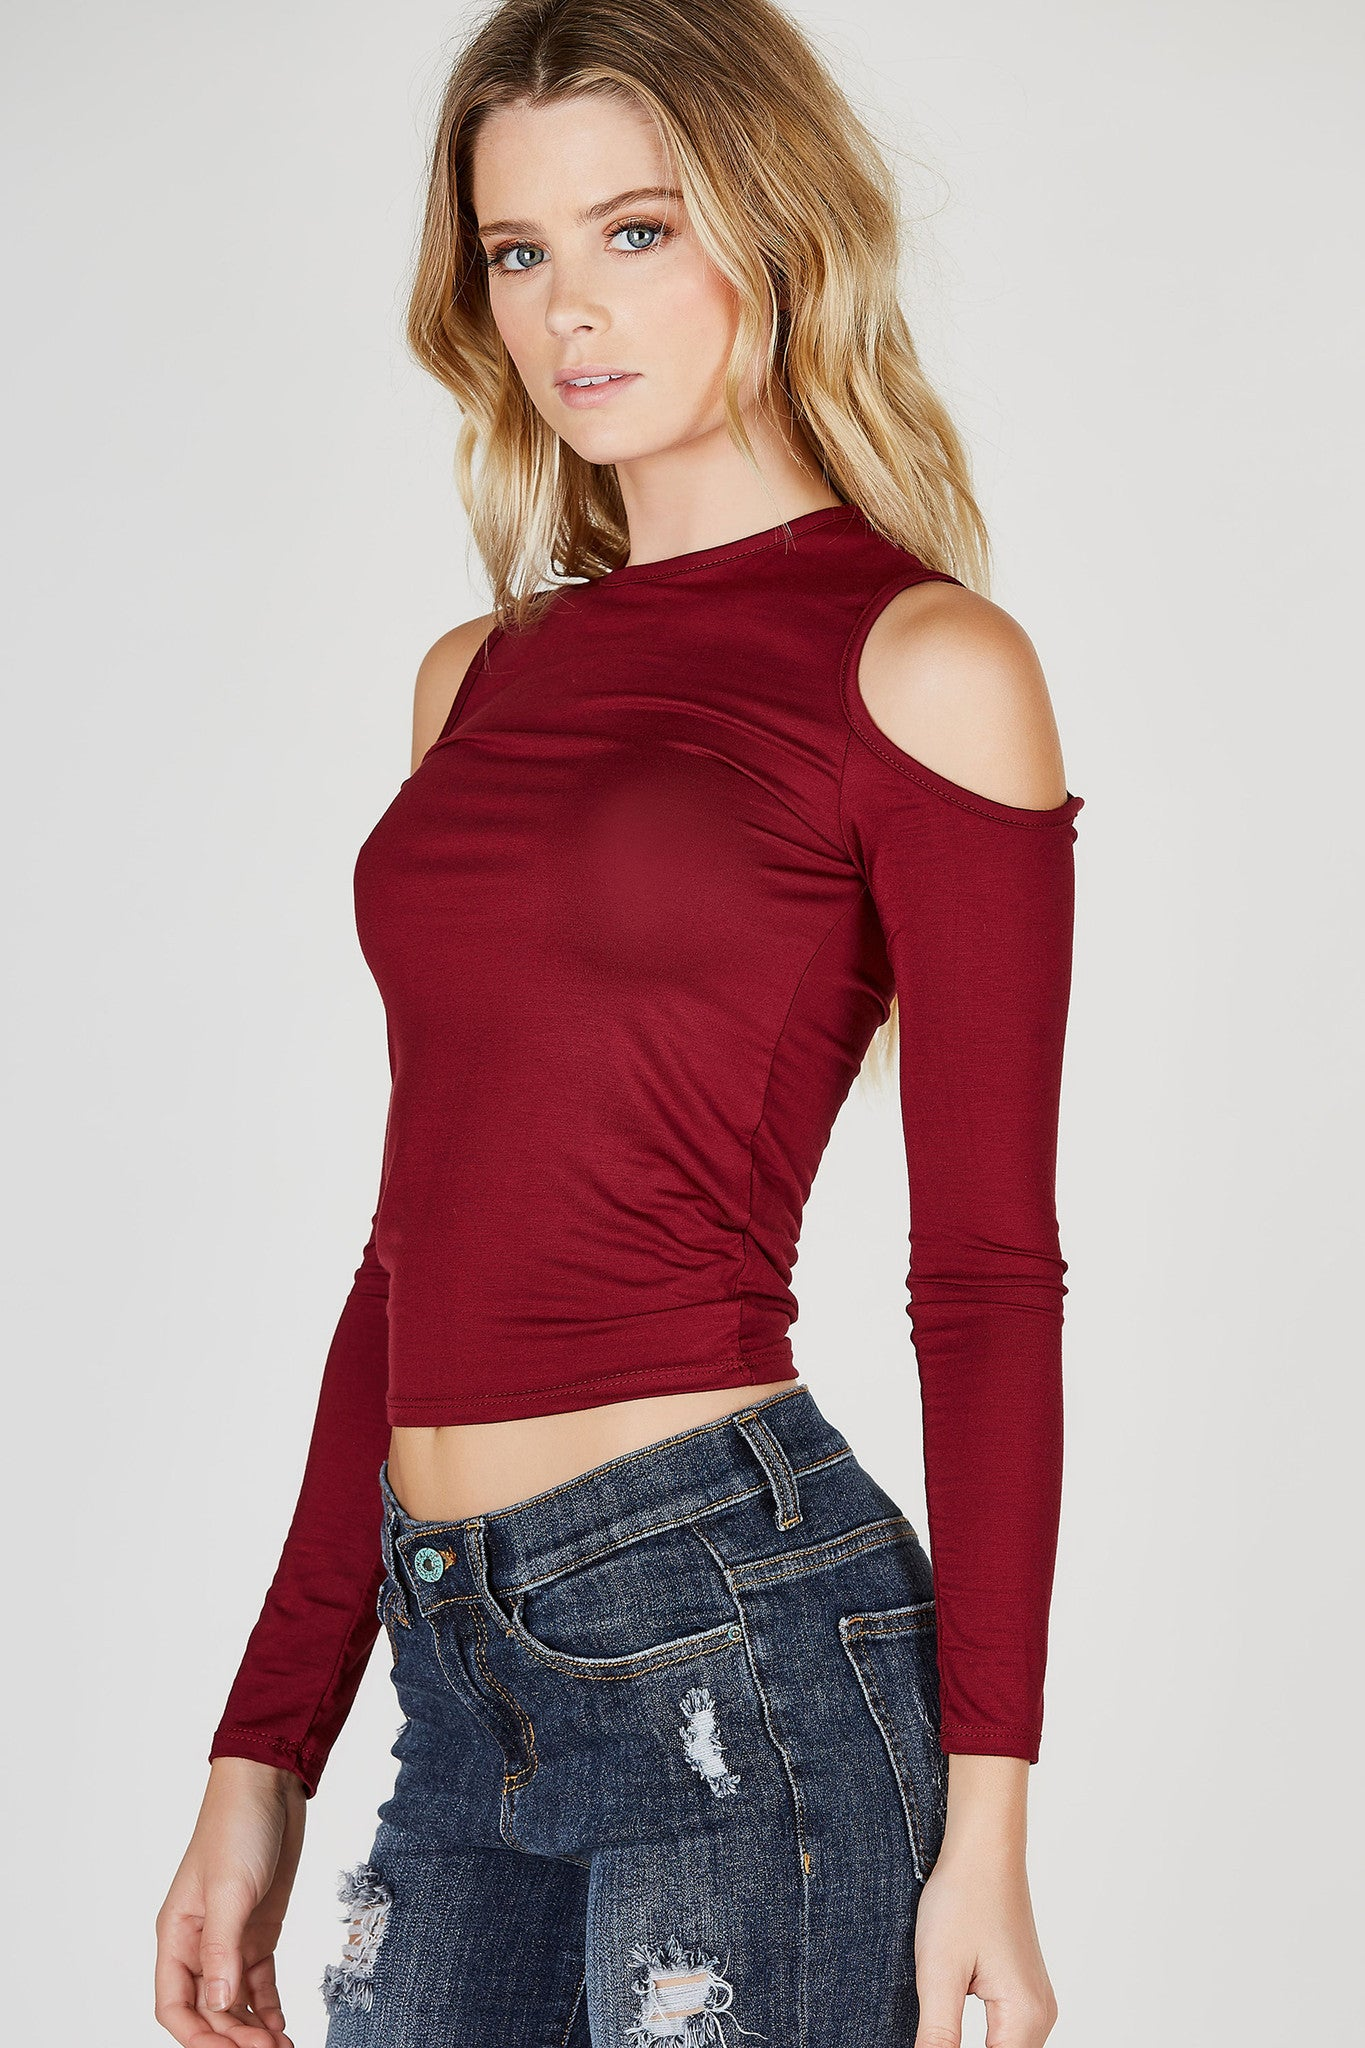 A basic long sleeve top with a fun twist. Chic cold shoulder cut outs for added personality. Soft lightweight material, great to layer under cardigans and jackets. Tuck into high waist skinny jeans and style with ankle boots for a chic transitional outfit.